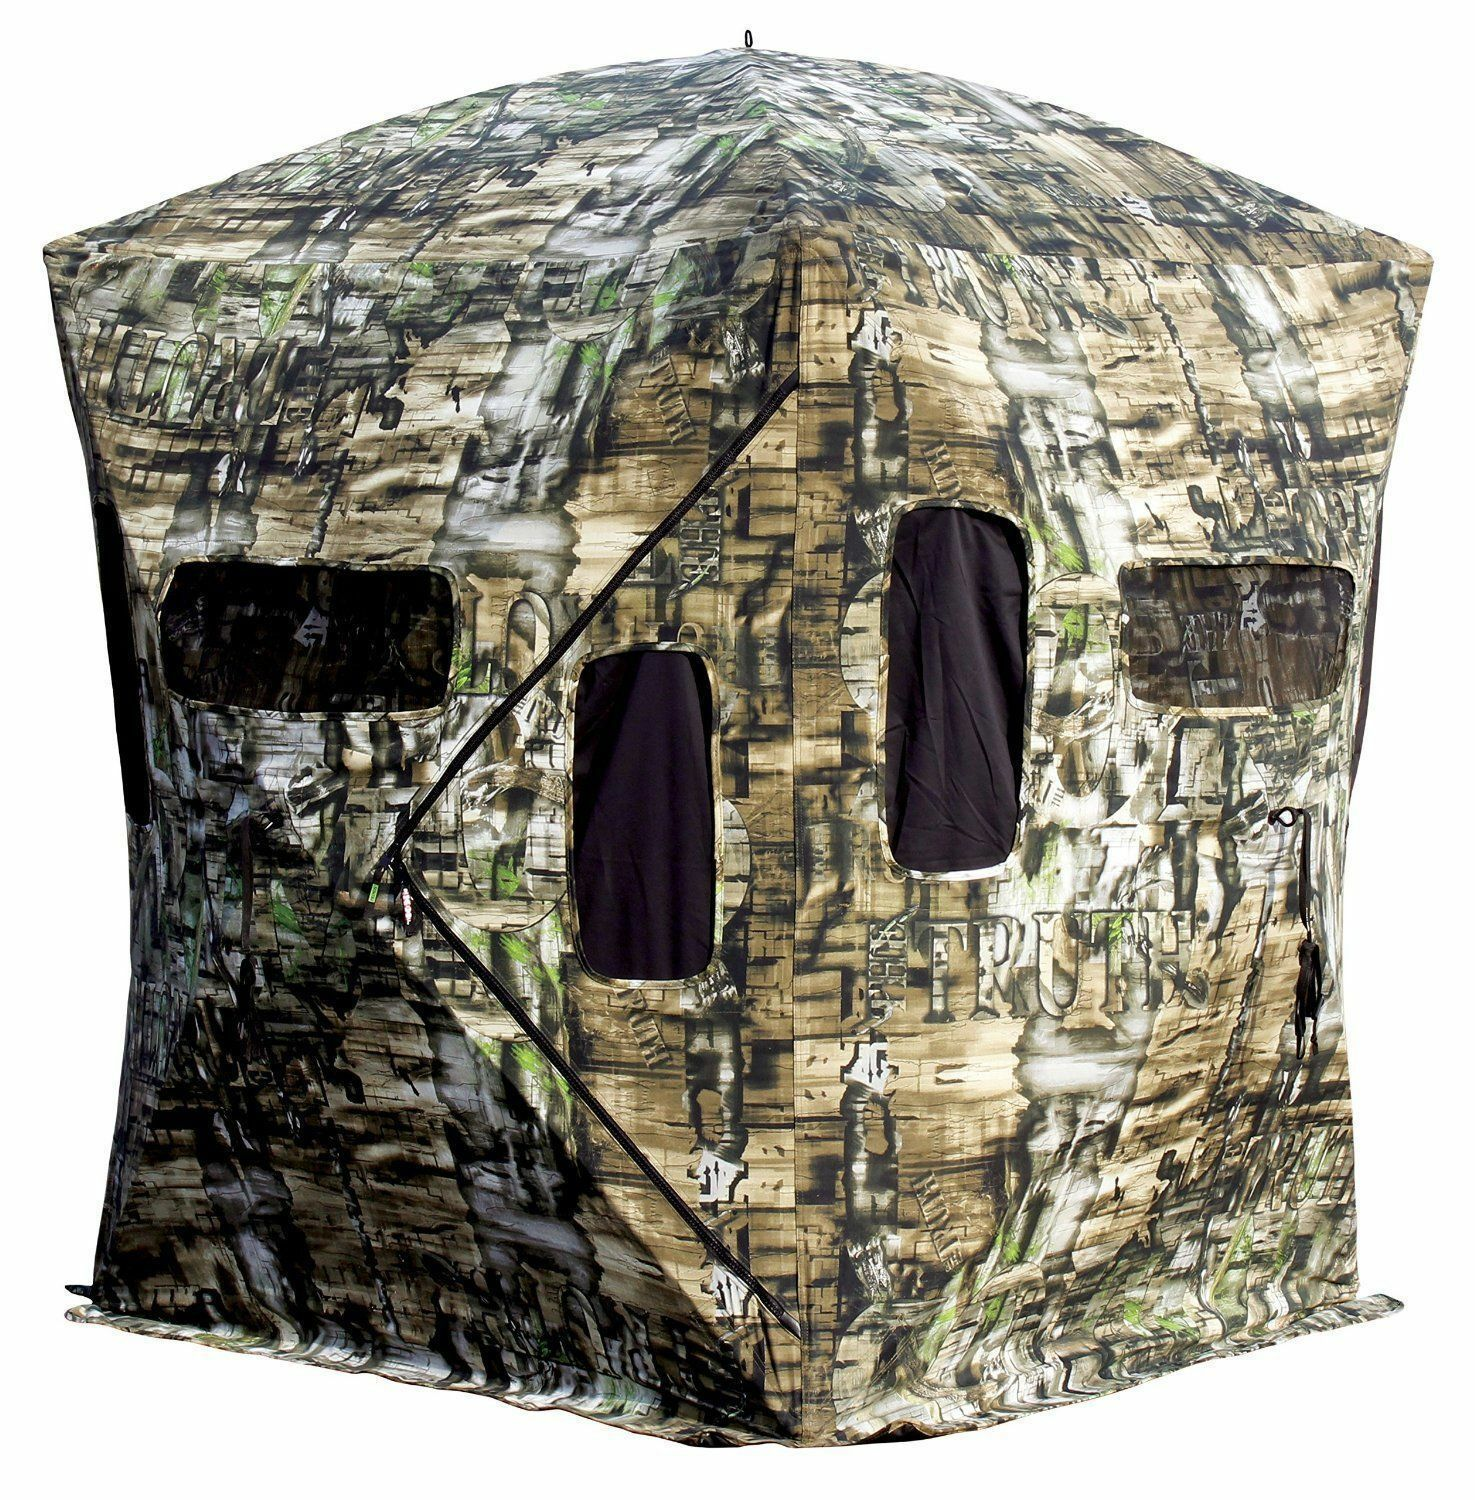 style ameristep realtree blinds inspirational brickhouse blind buy xtra of in ground new caretaker hunting ap